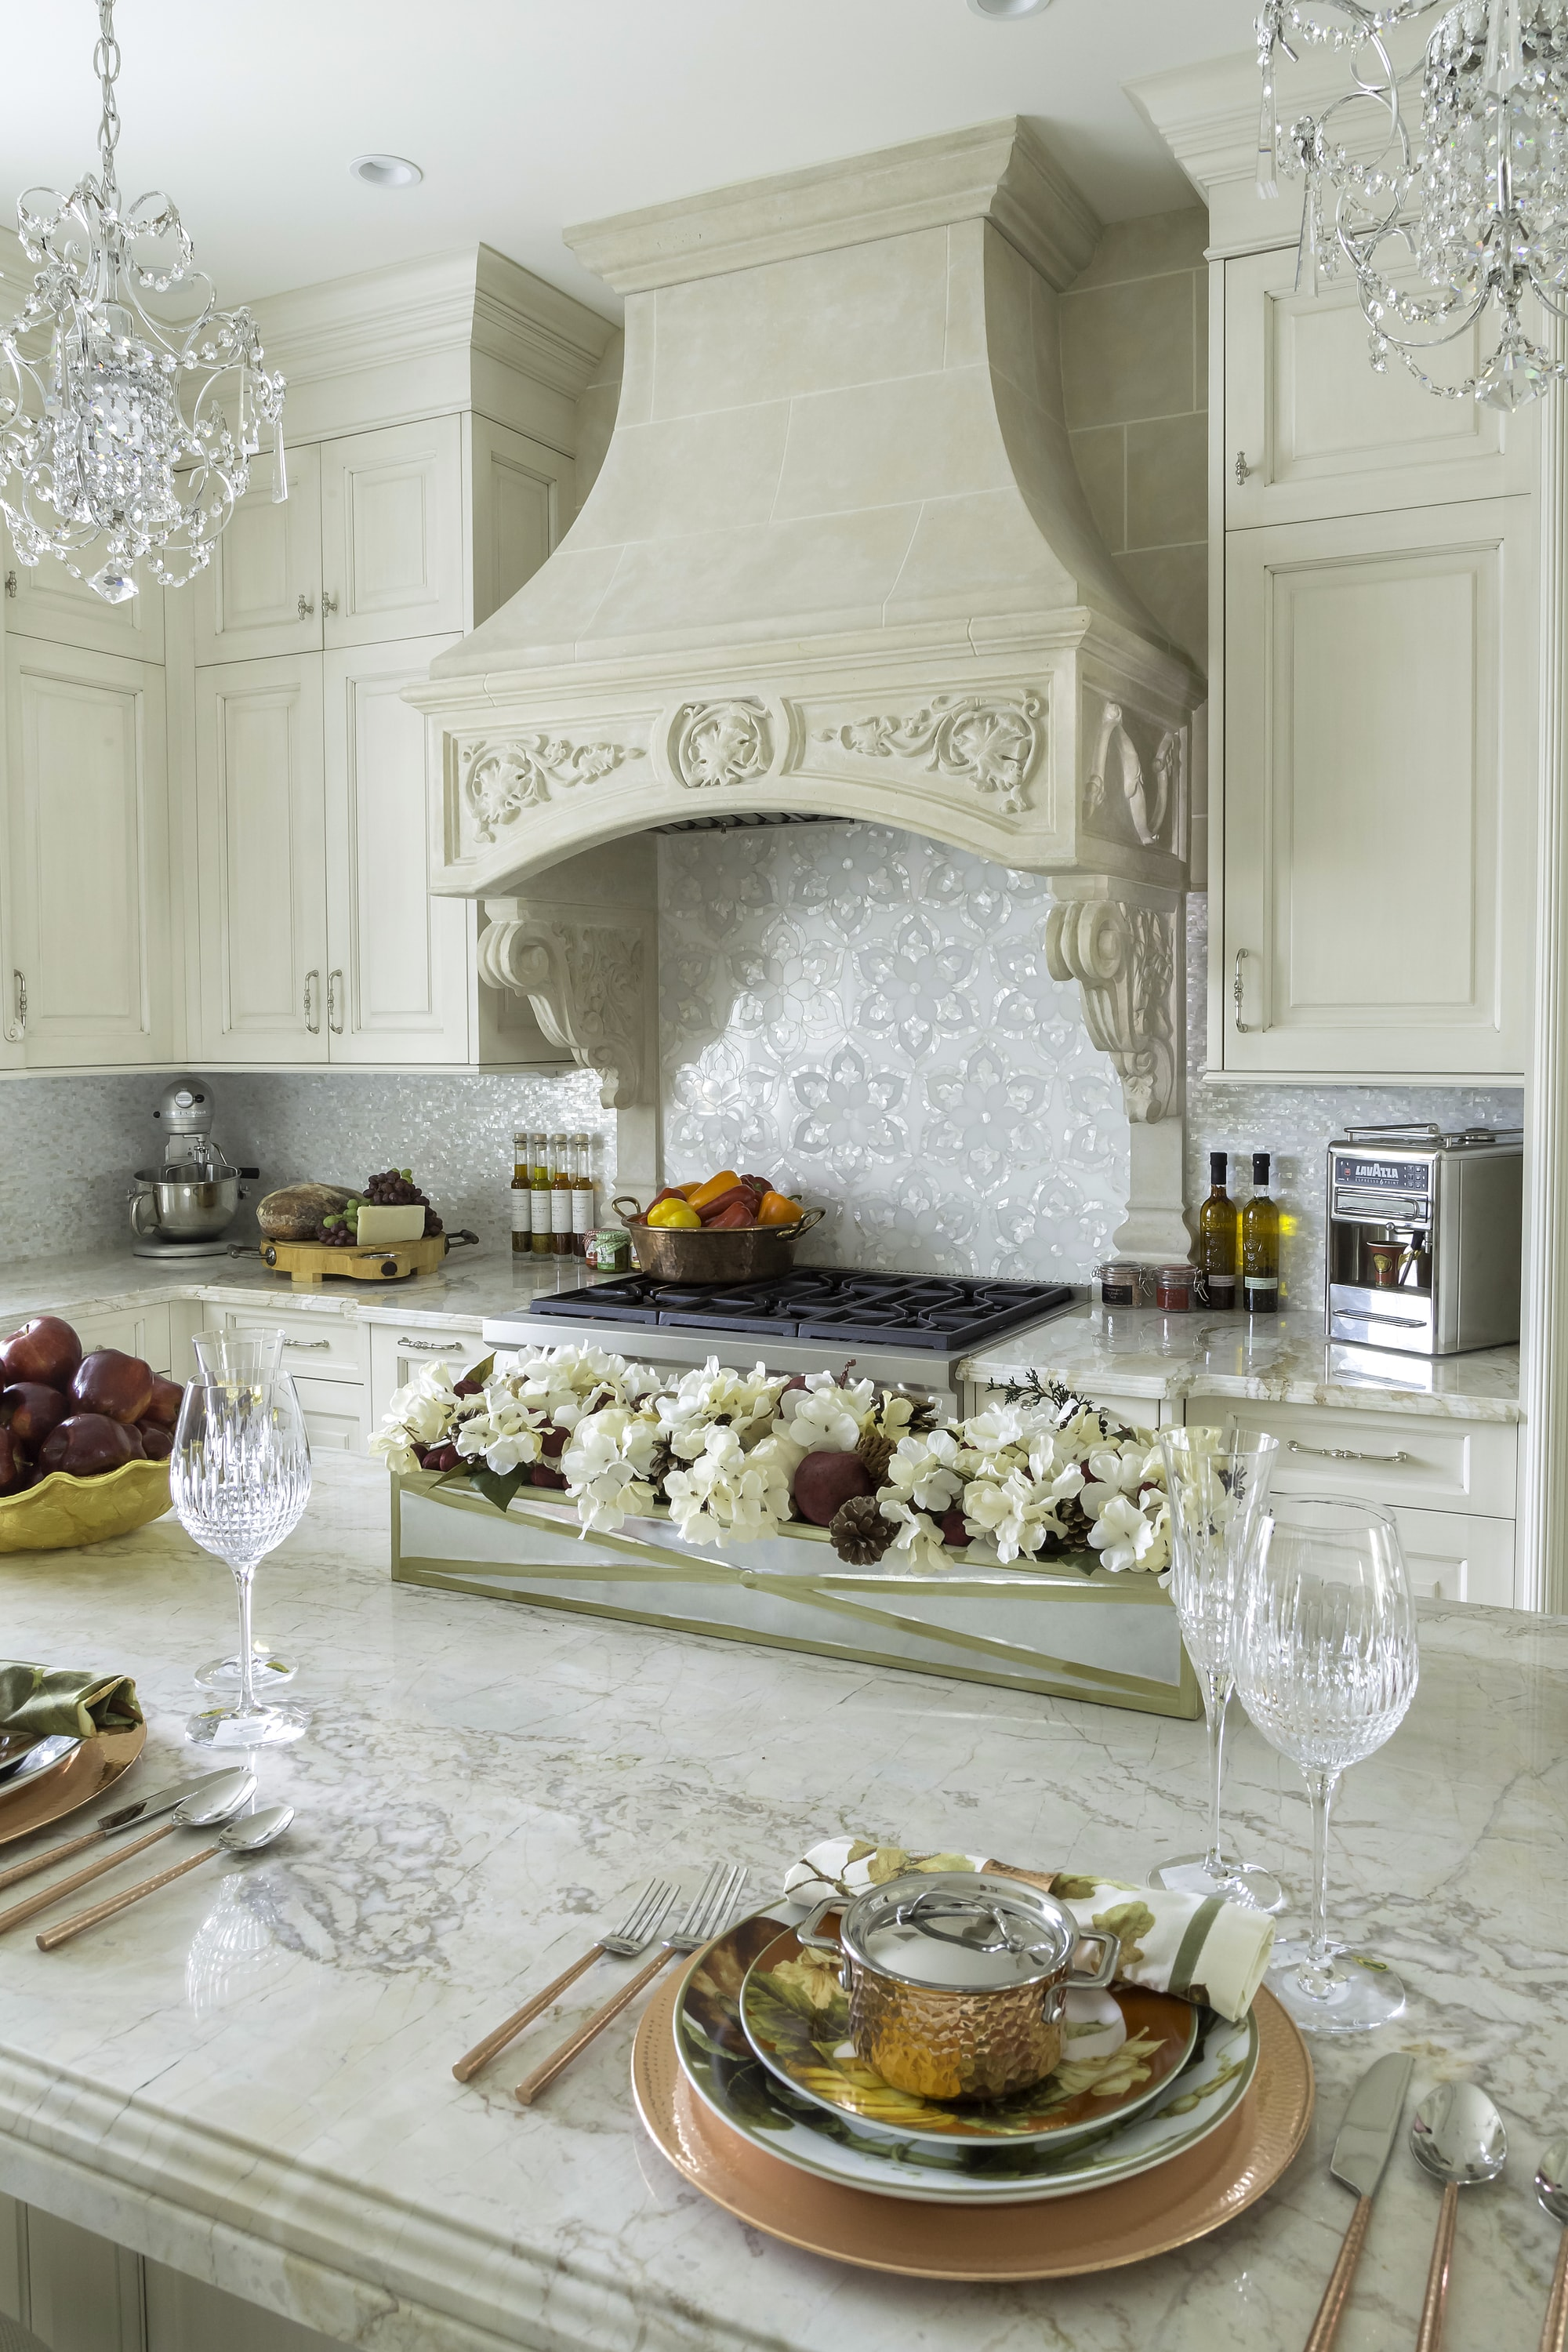 Traditional style kitchen with range hood and upper cabinets